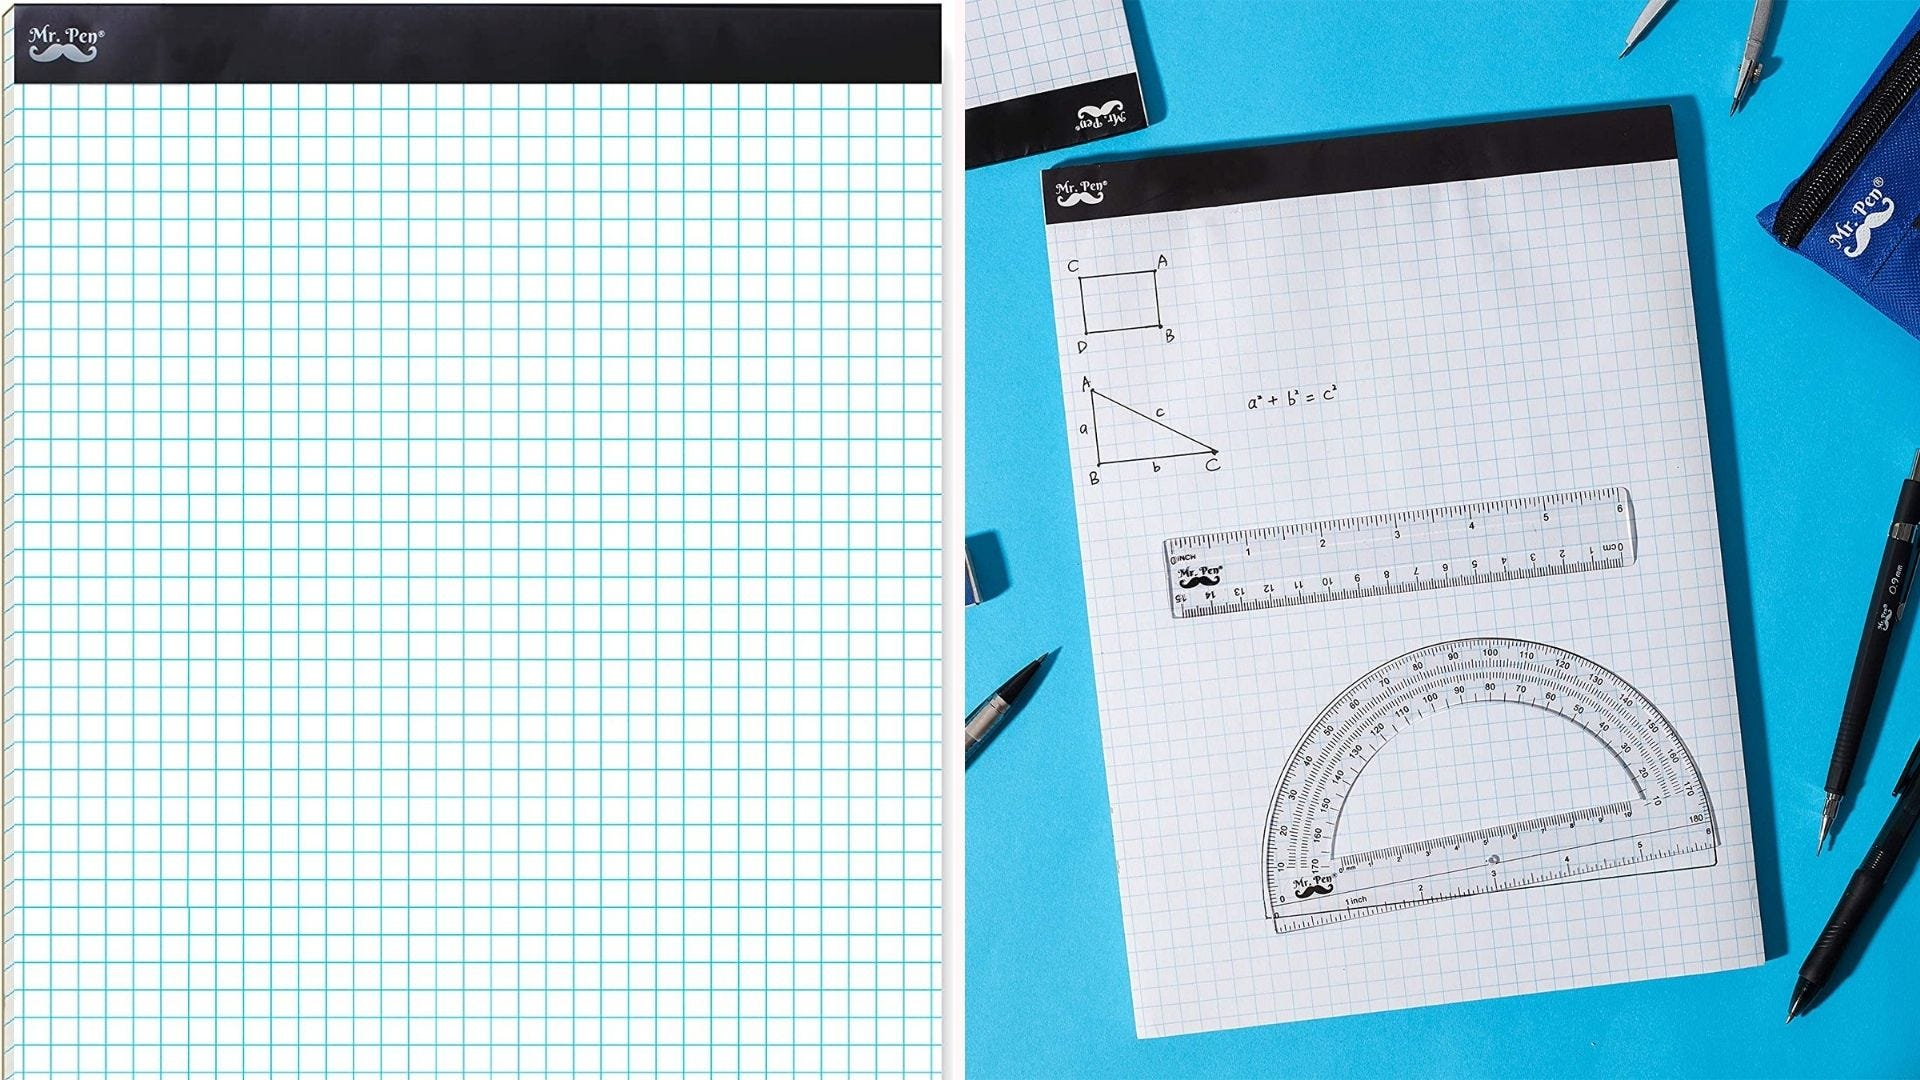 On the left, a closeup view of a 4-by-4 graph pad that features a perforated seal at the top. On the left, a ruler and protractor lie on the pad while surrounded by pencils and pens.